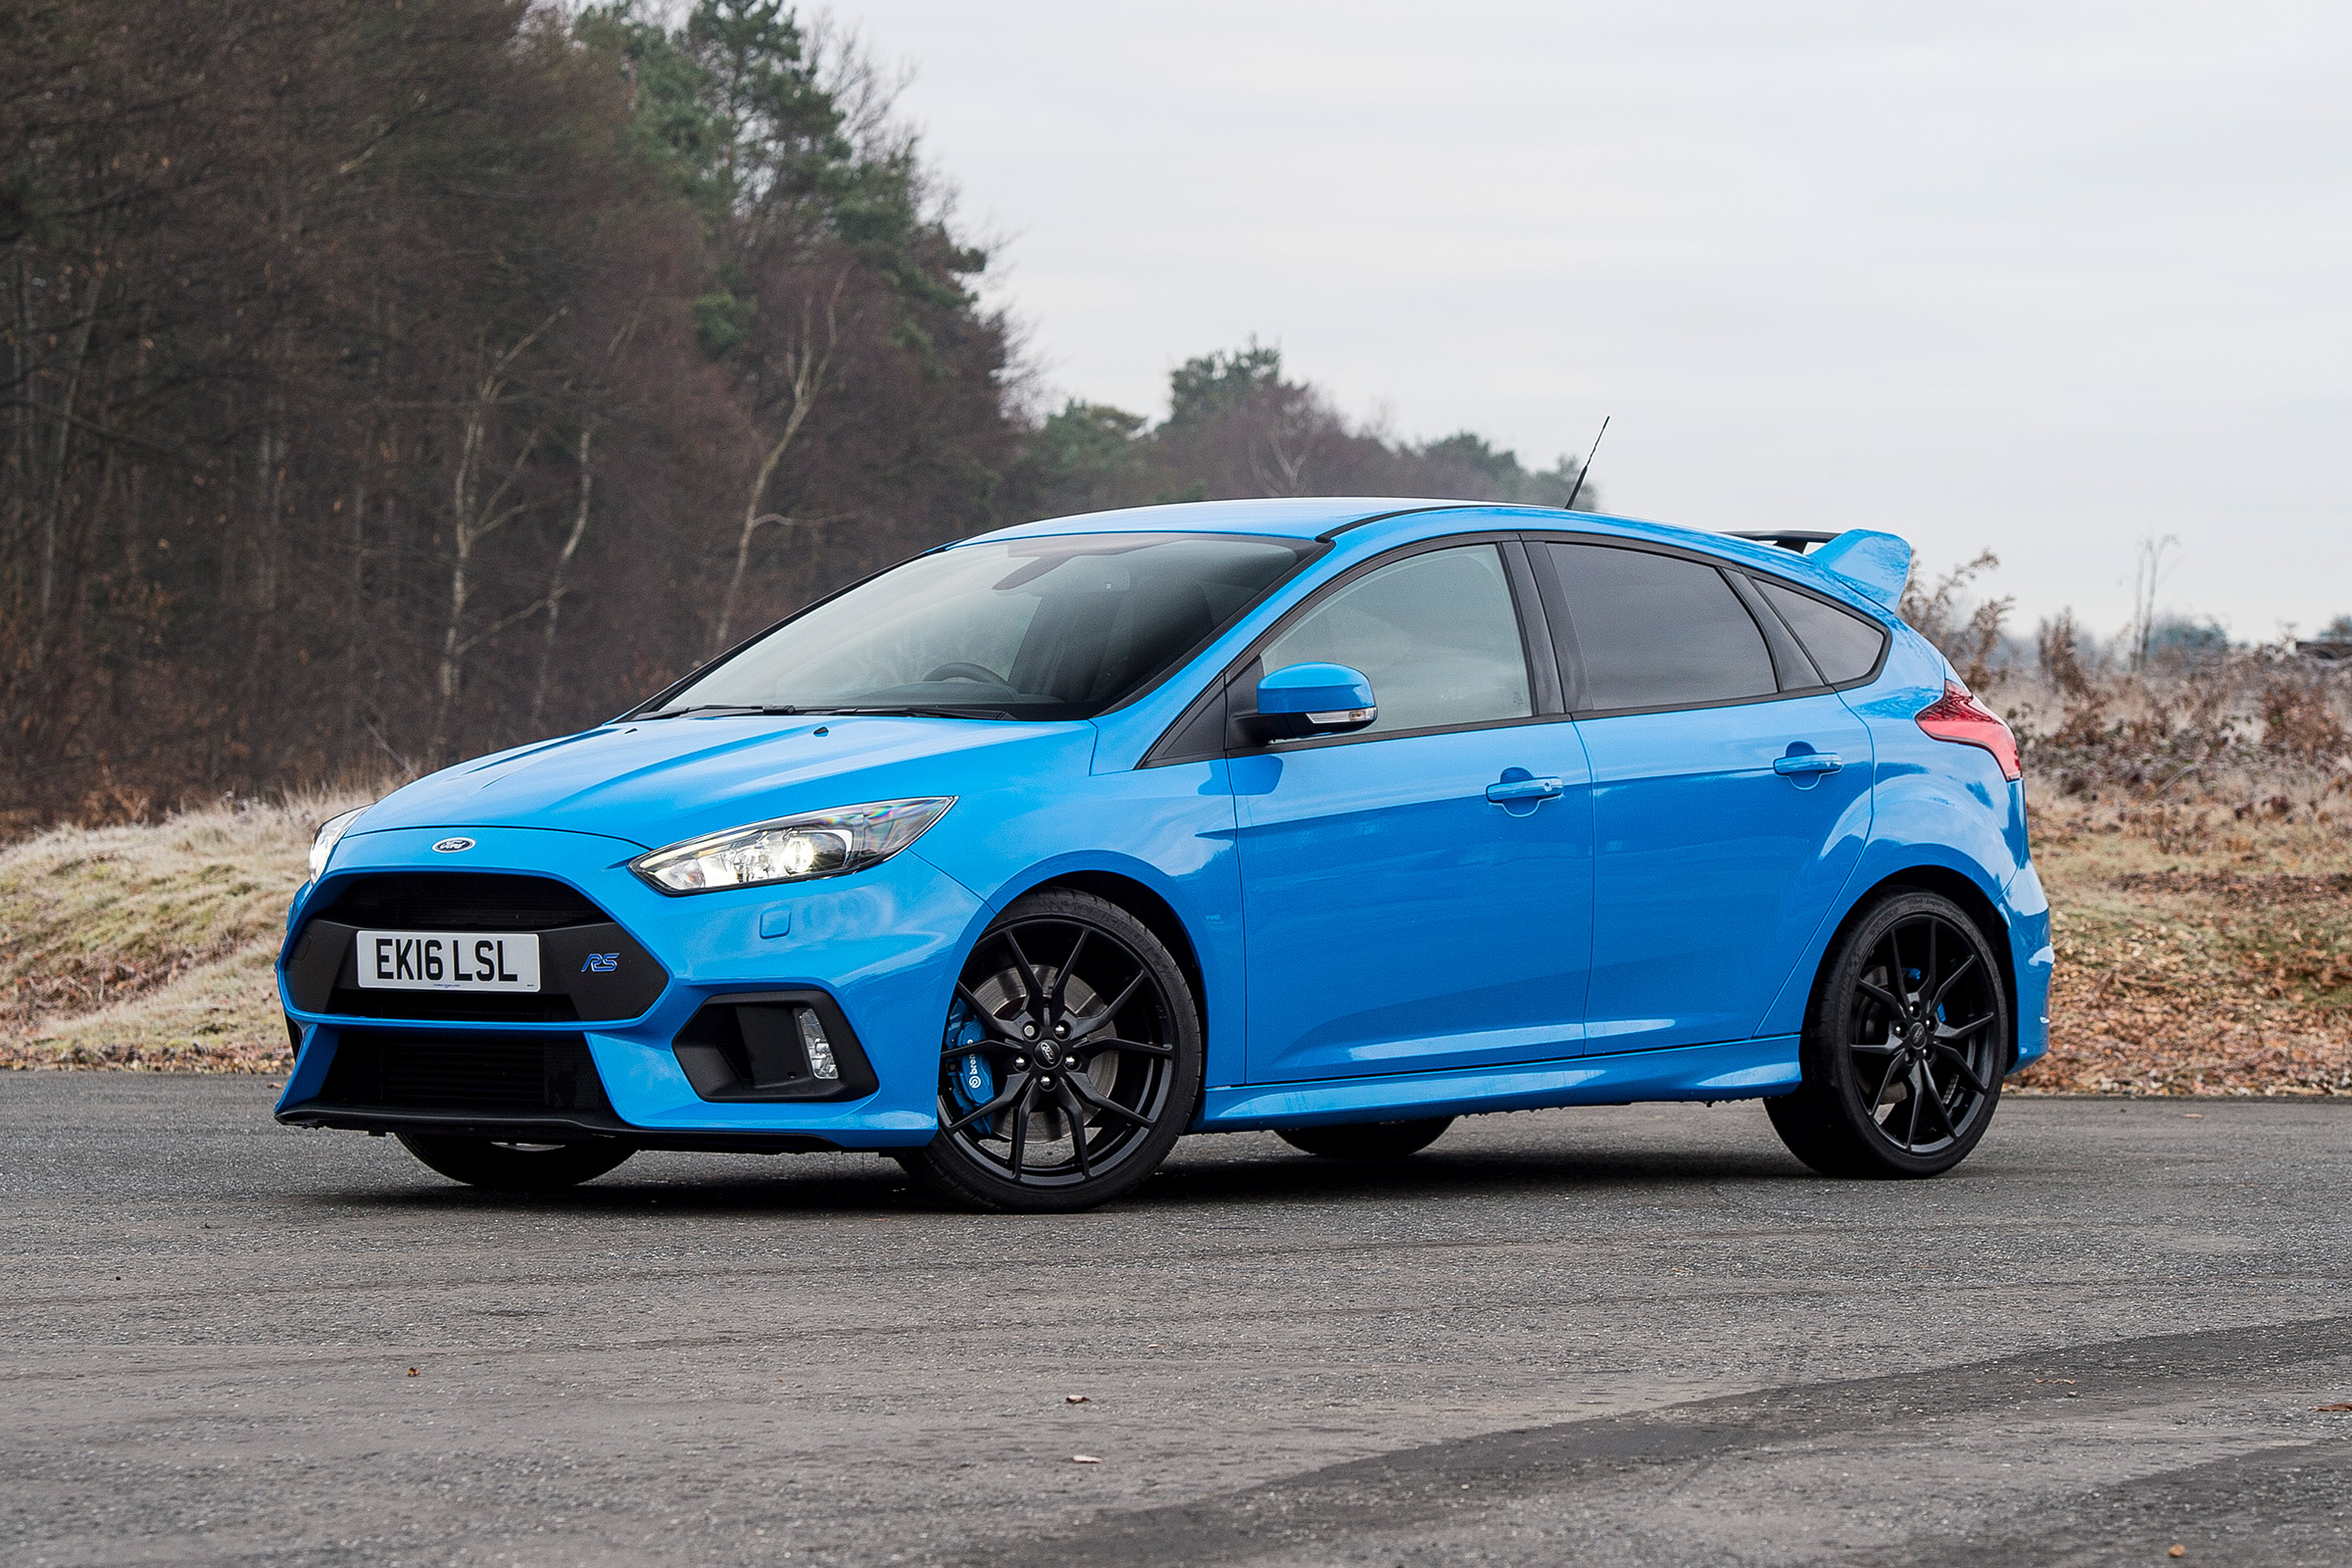 2017 Ford Focus RS Blue Exterior Front And Side (Photo 2 of 23)